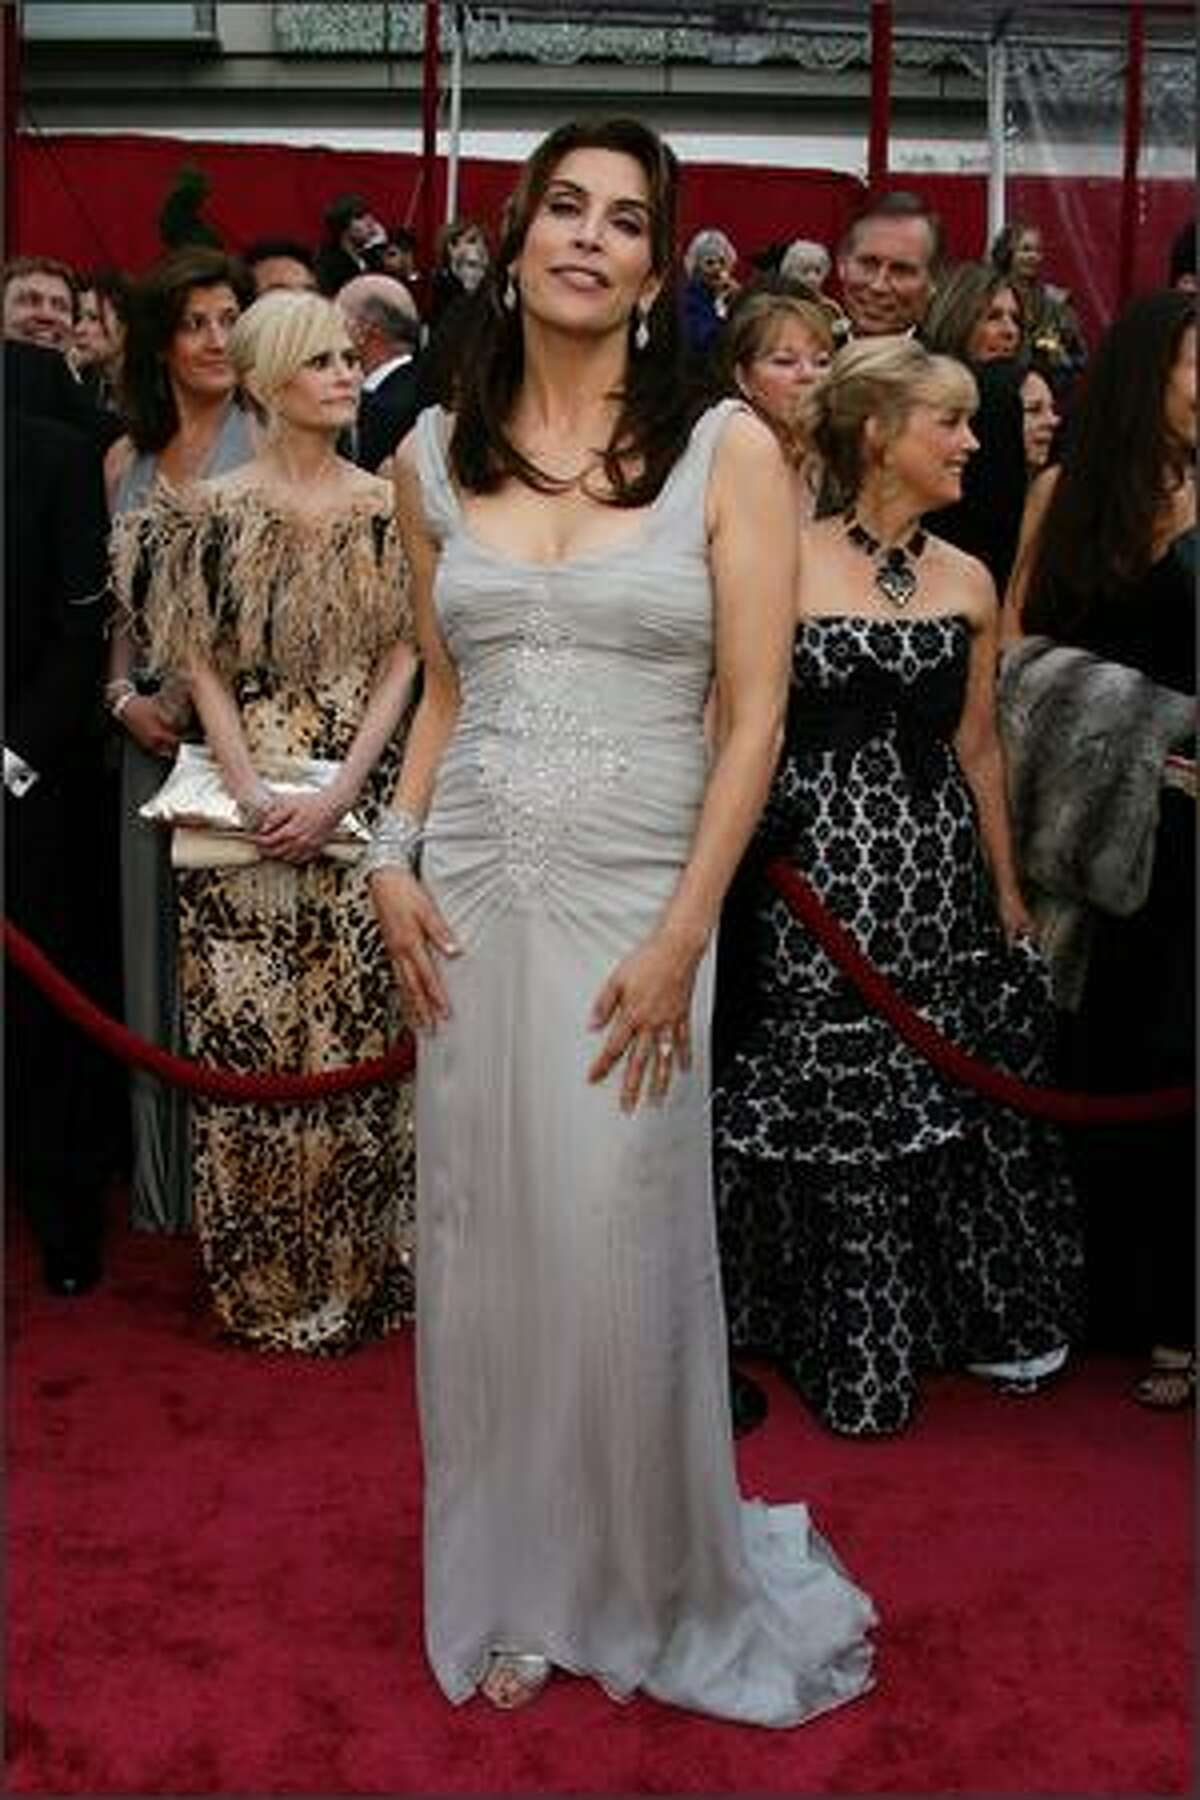 Actress Jo Champa arrives at the 80th Annual Academy Awards held at the Kodak Theatre in Hollywood, California.